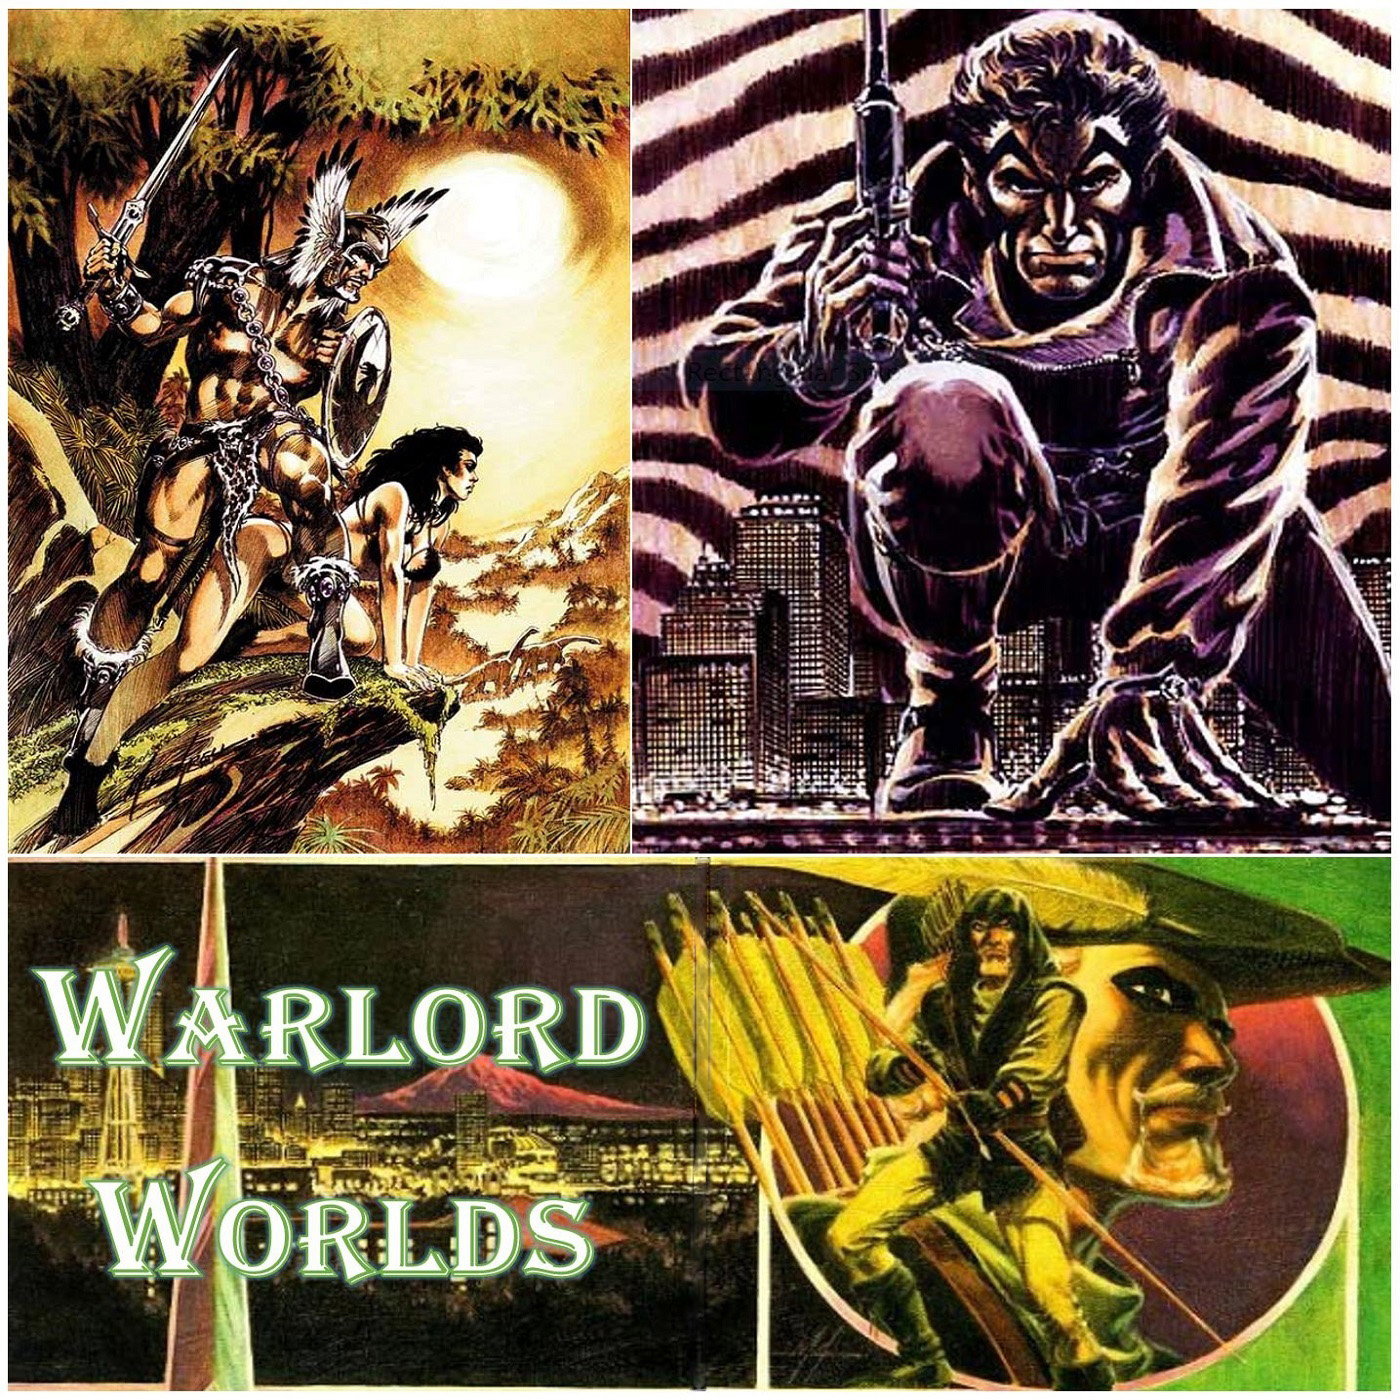 Warlord Worlds